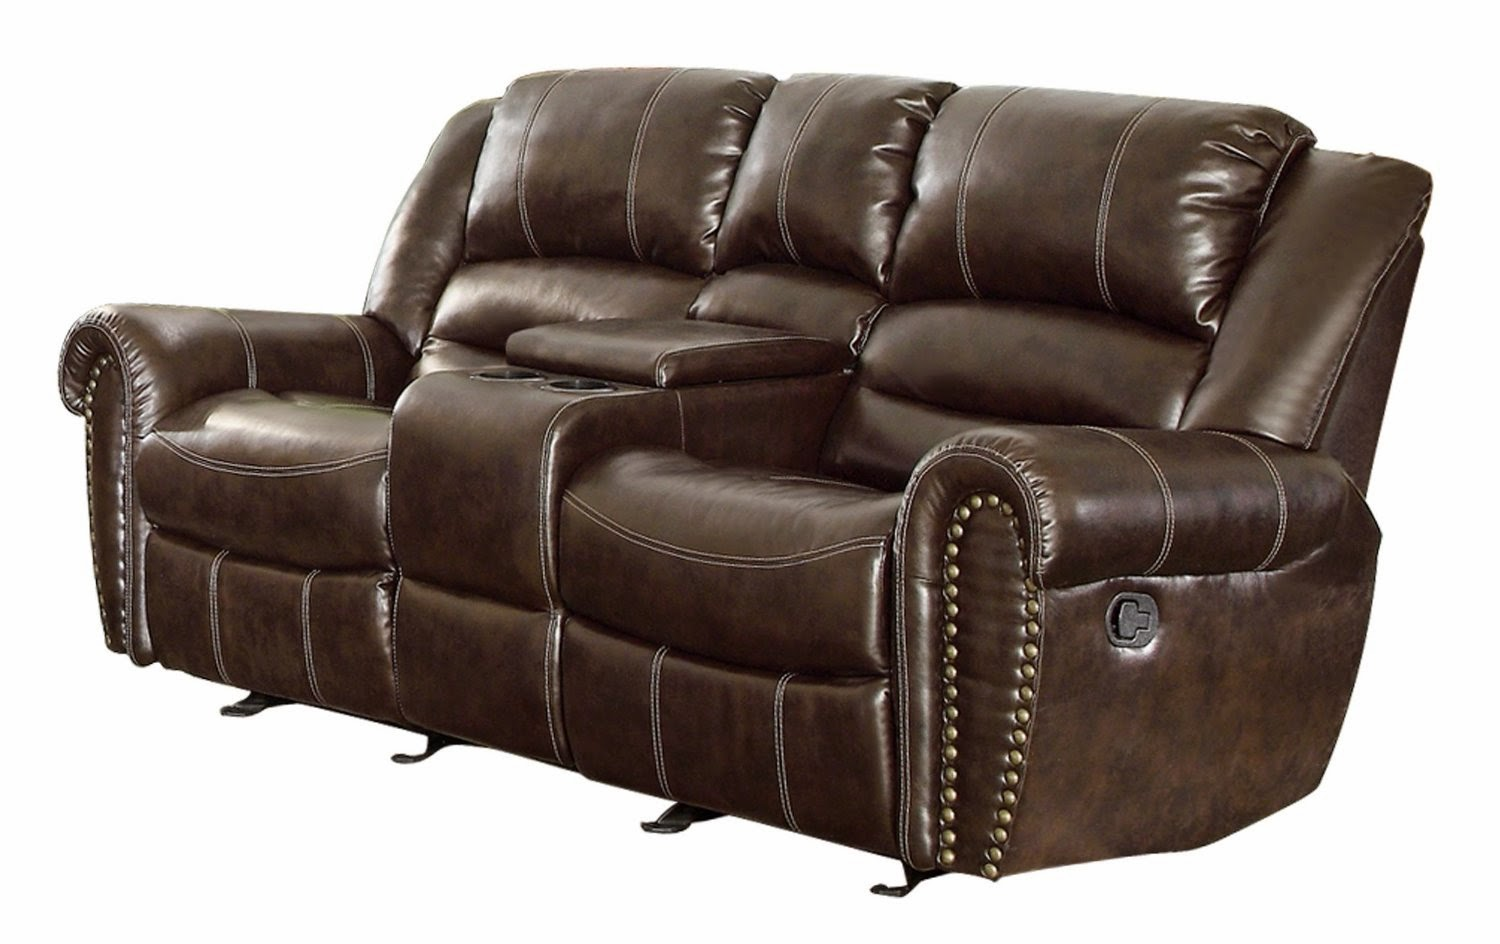 Cheap Reclining Sofas Sale 2 Seater Leather Recliner Sofa Sale